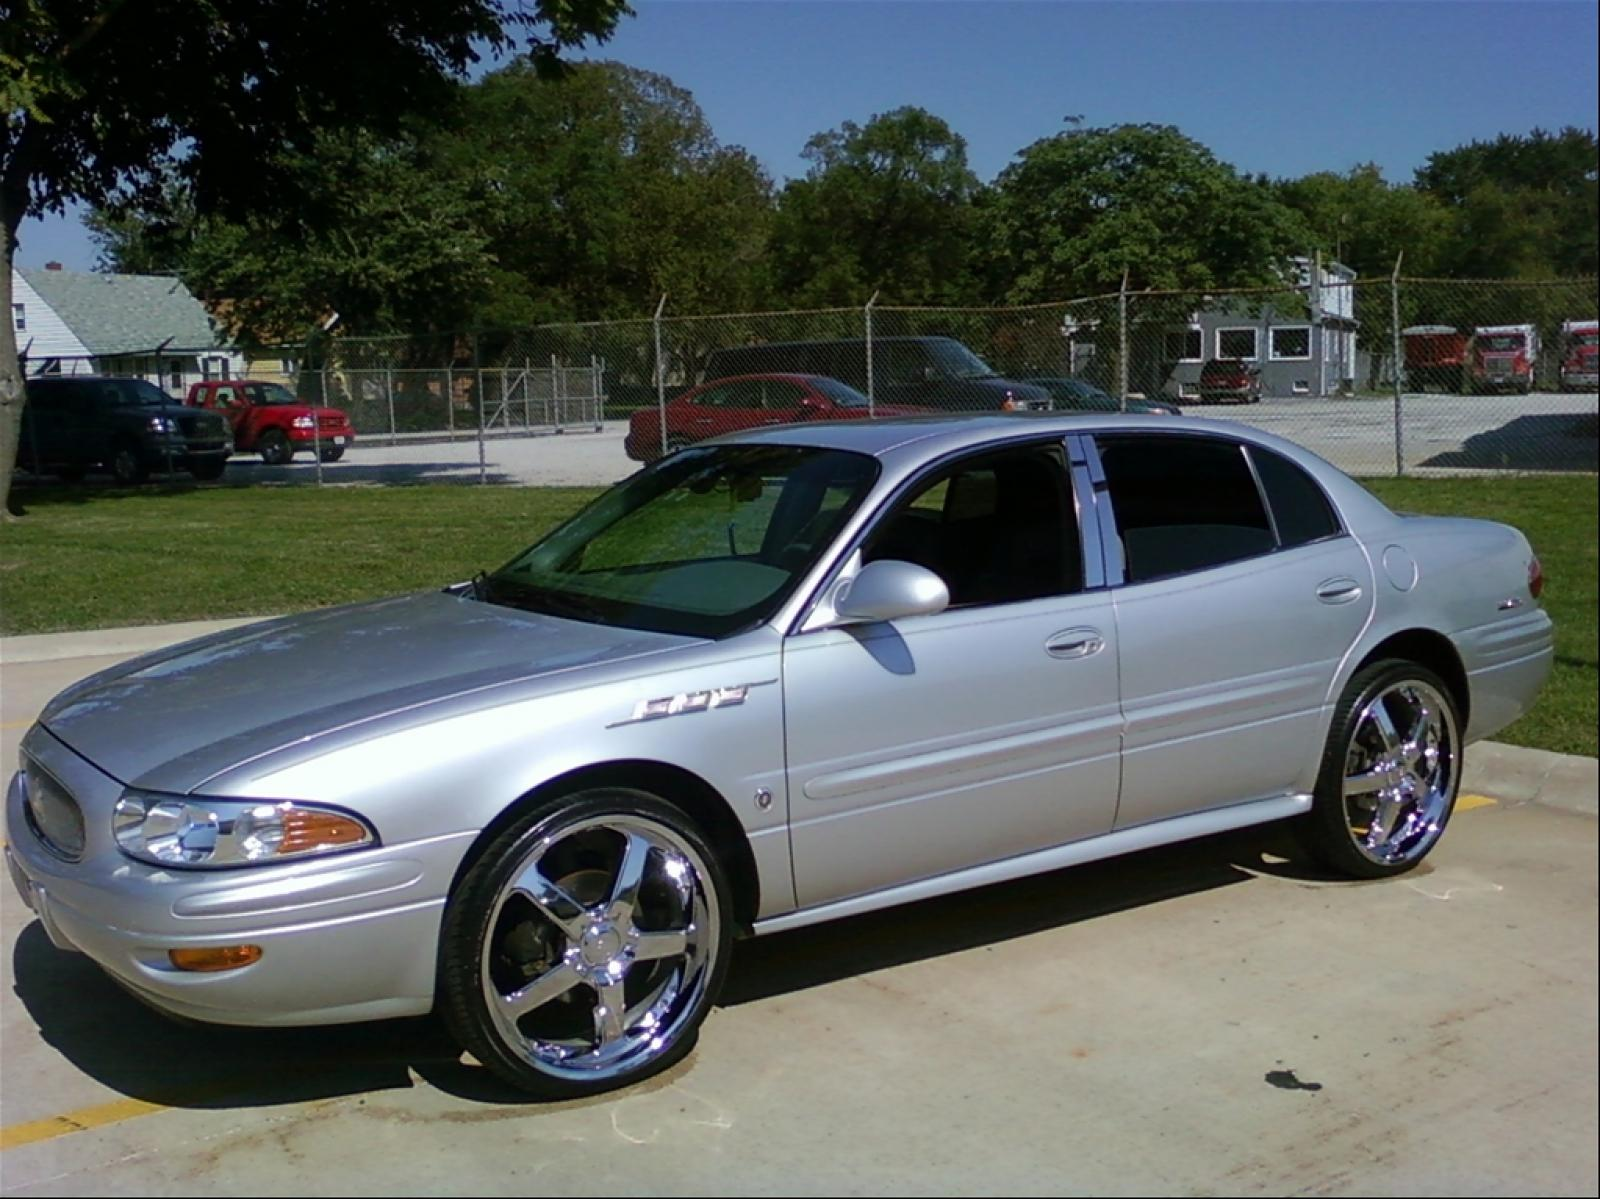 2001 Buick Lesabre Information And Photos Zombiedrive